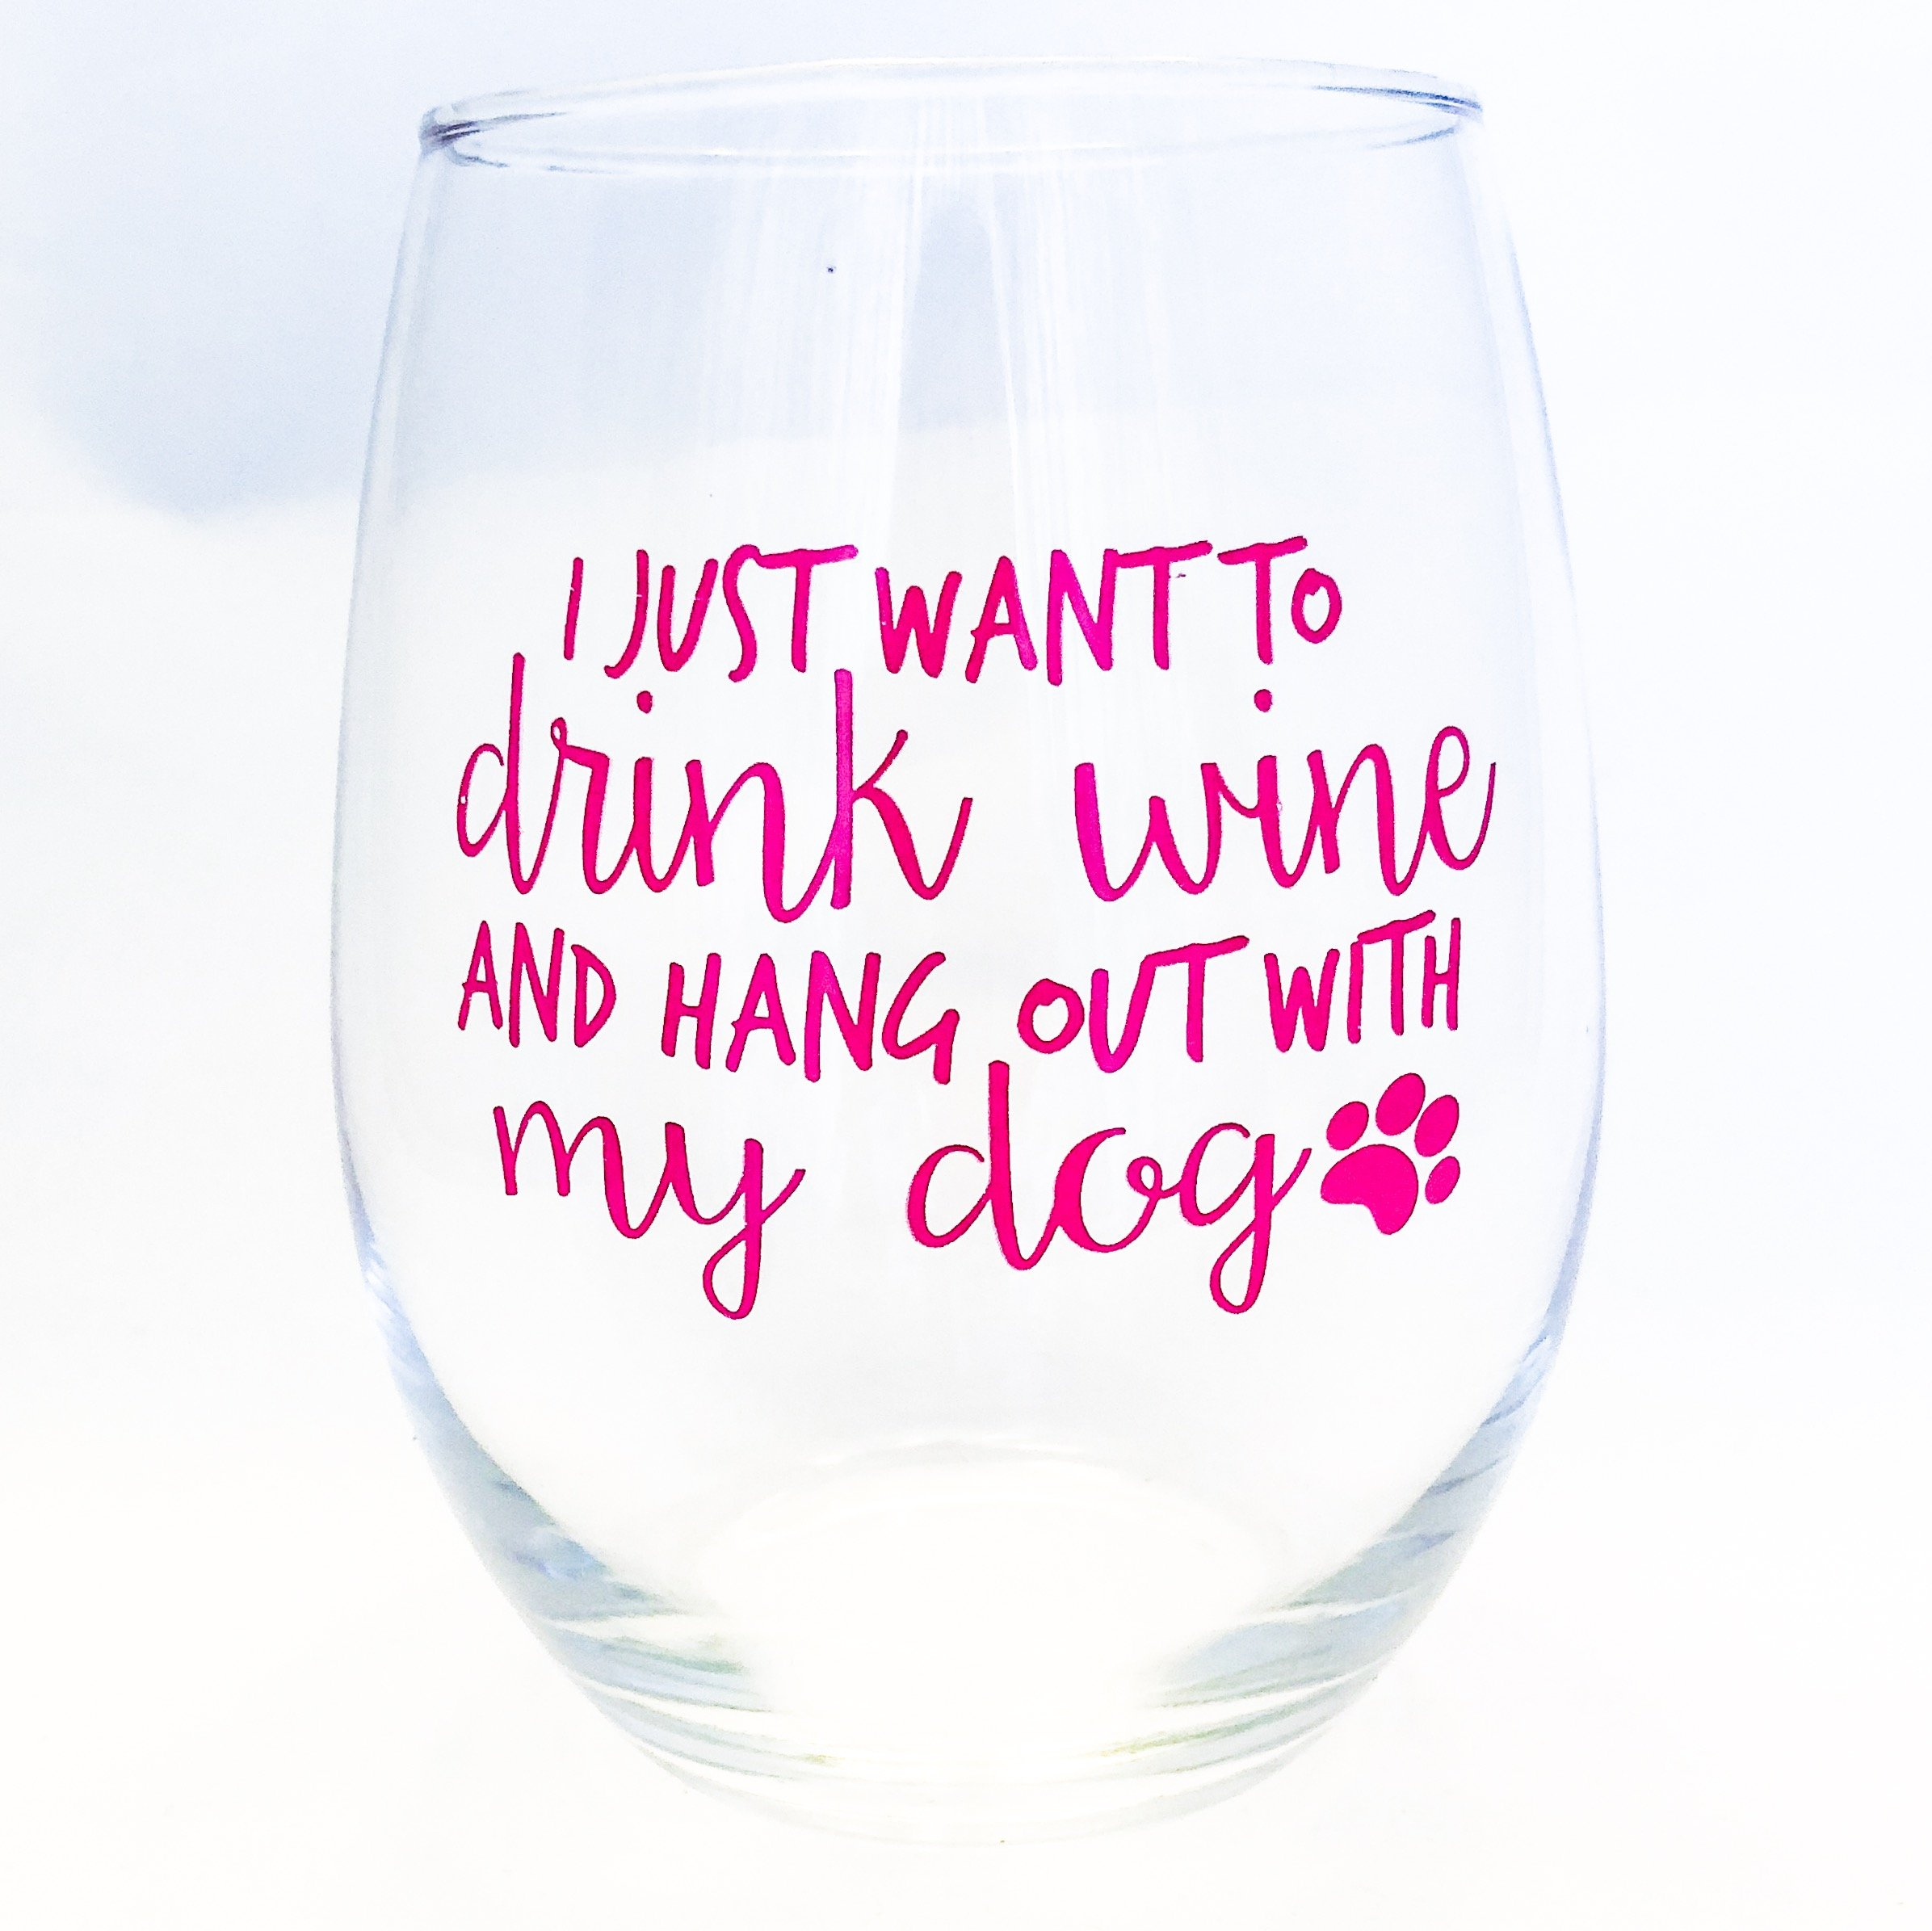 I Just Want to Drink Wine and Hang Out With My Dog 21oz Large Stemless Wine Glass - Funny Wine Glasses for Moms, Sisters, Best Friends